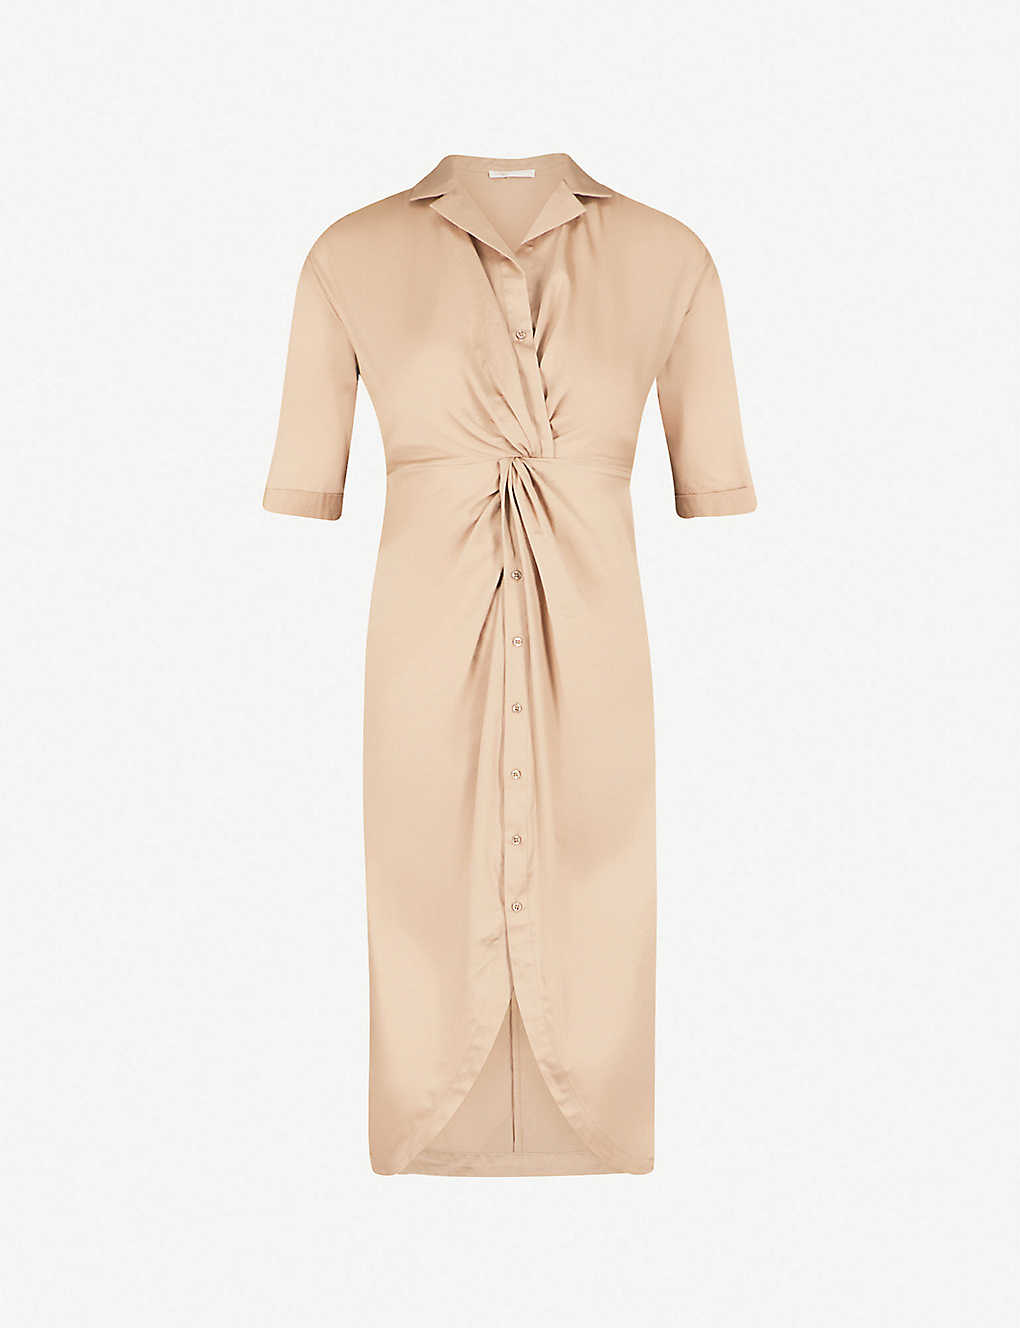 Maje Rejane Knot Detail Cotton Poplin Shirt Dress Selfridges